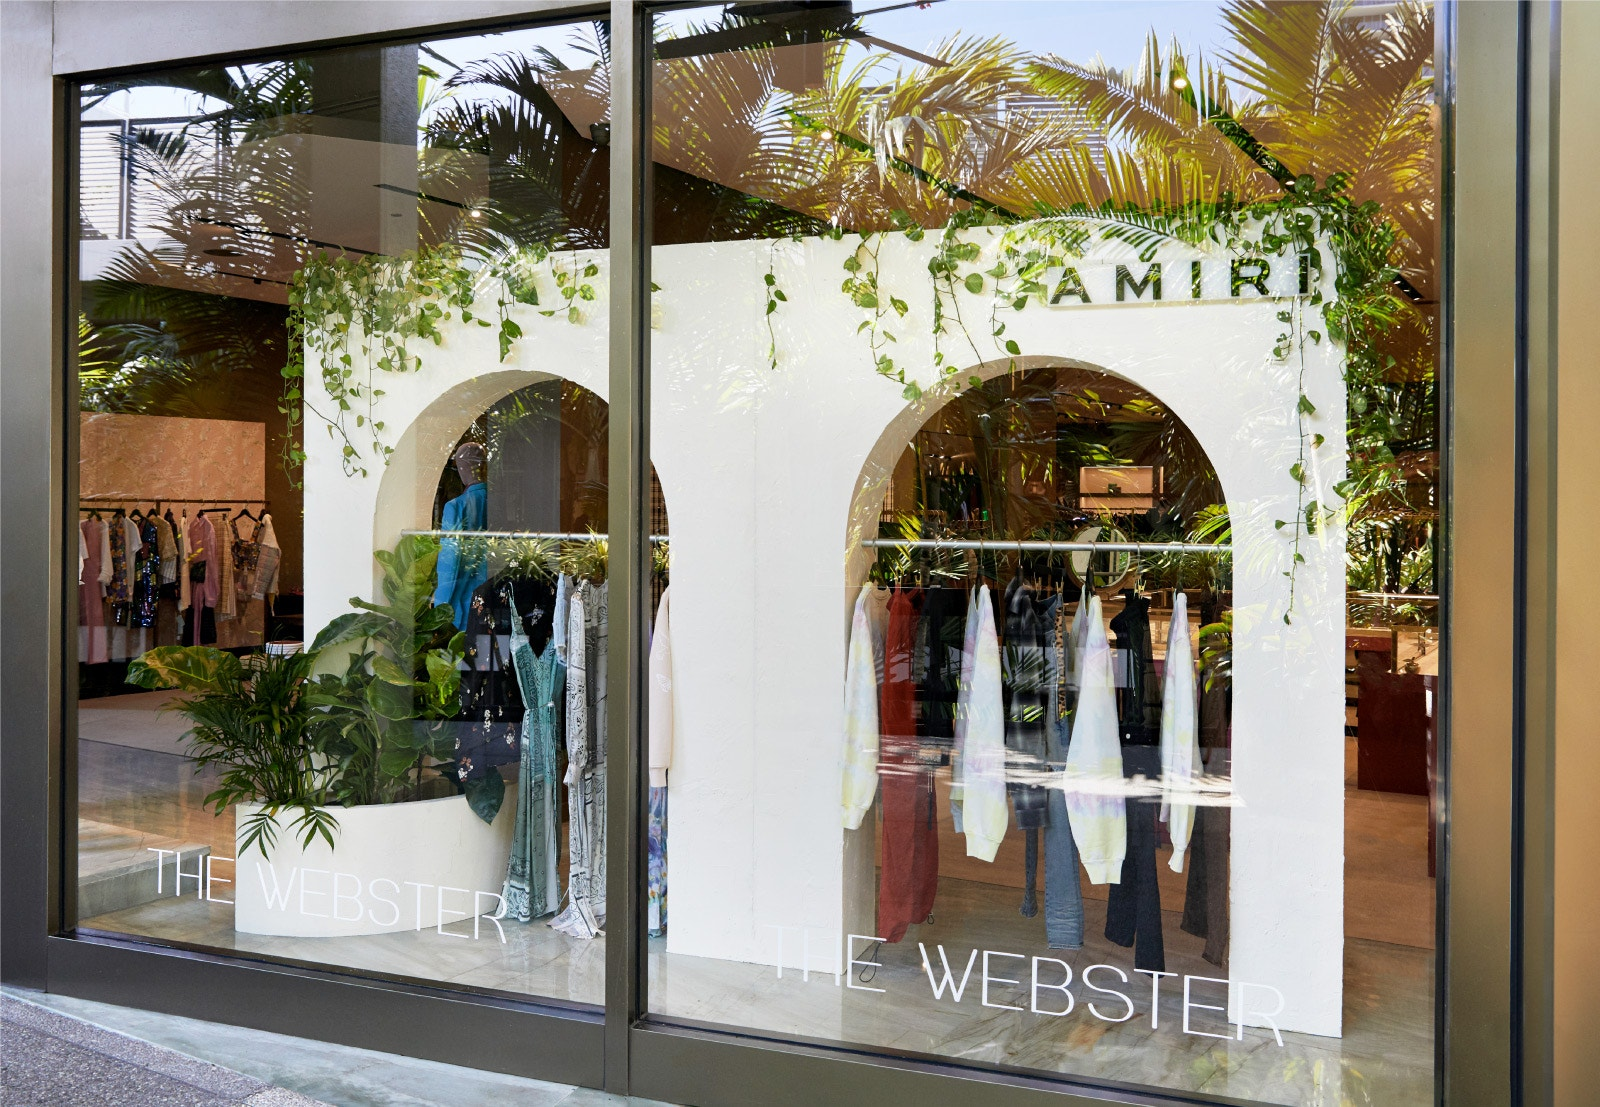 VISIT THE WEBSTER BAL HARBOUR